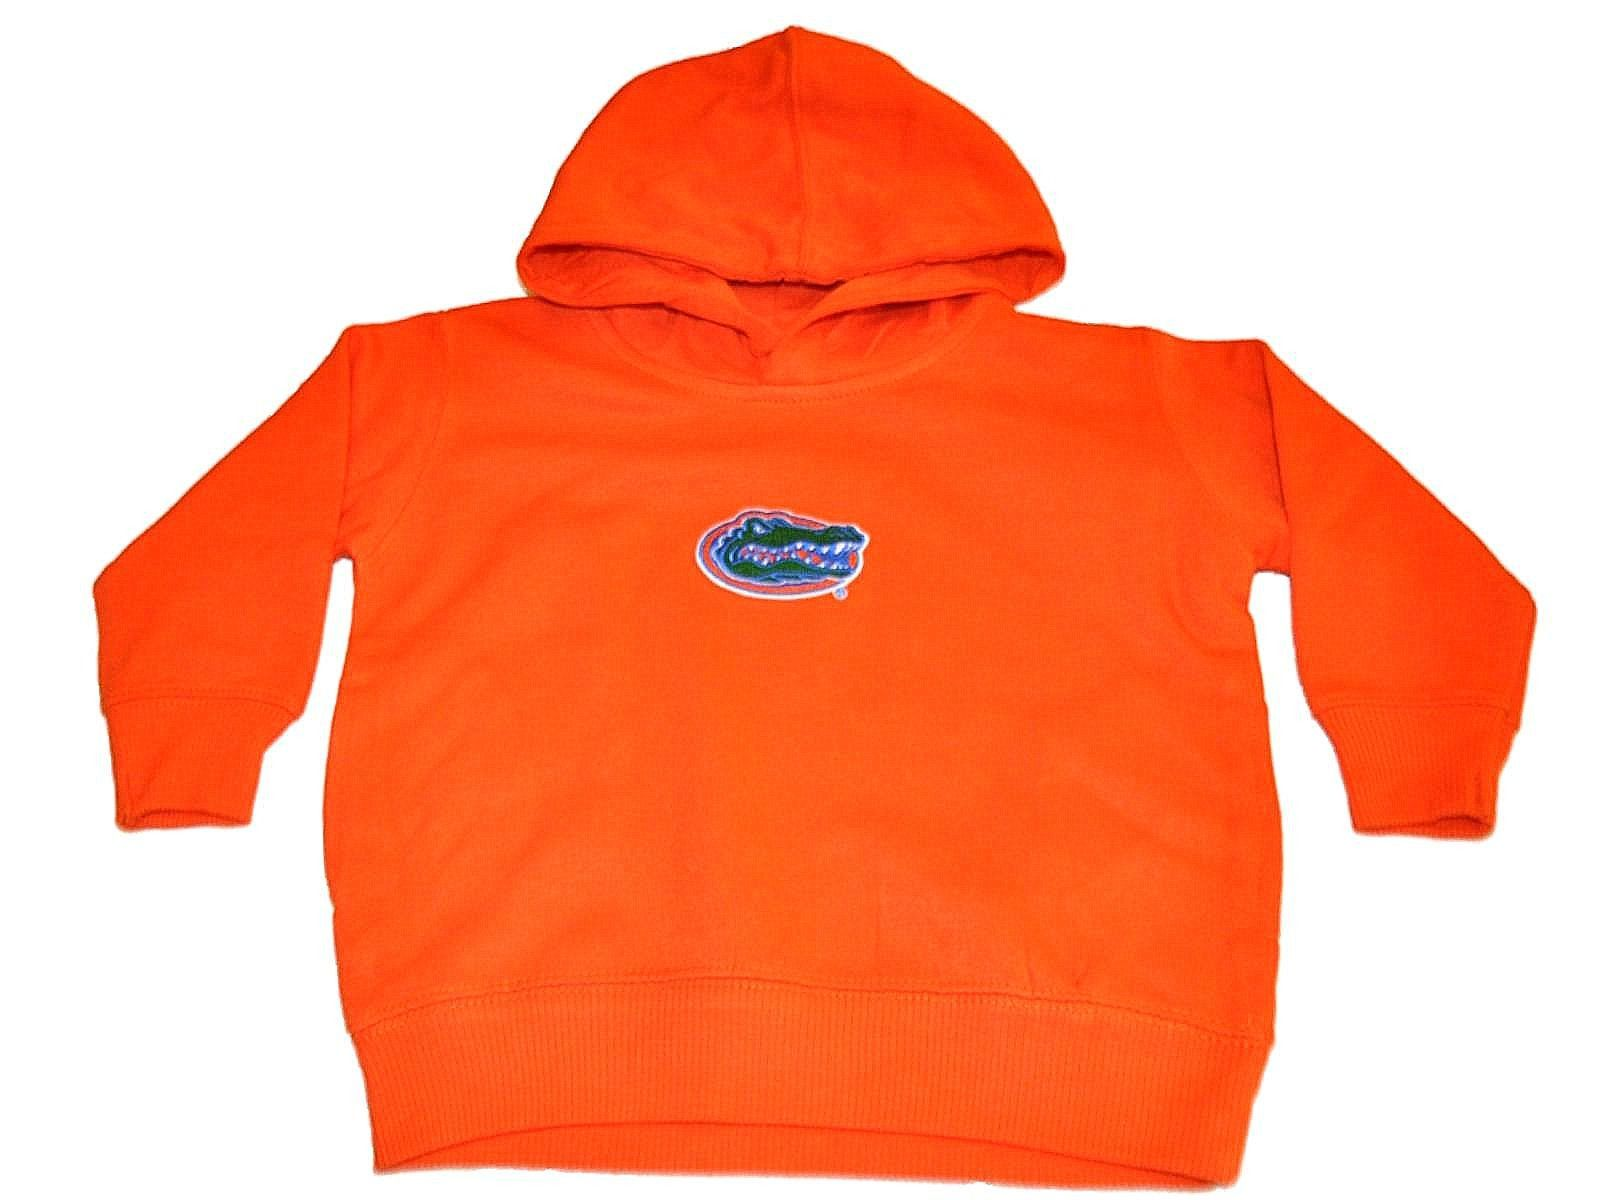 Florida Gators Two Feet Ahead Toddler Orange Fleece Hoodie Sweatshirt